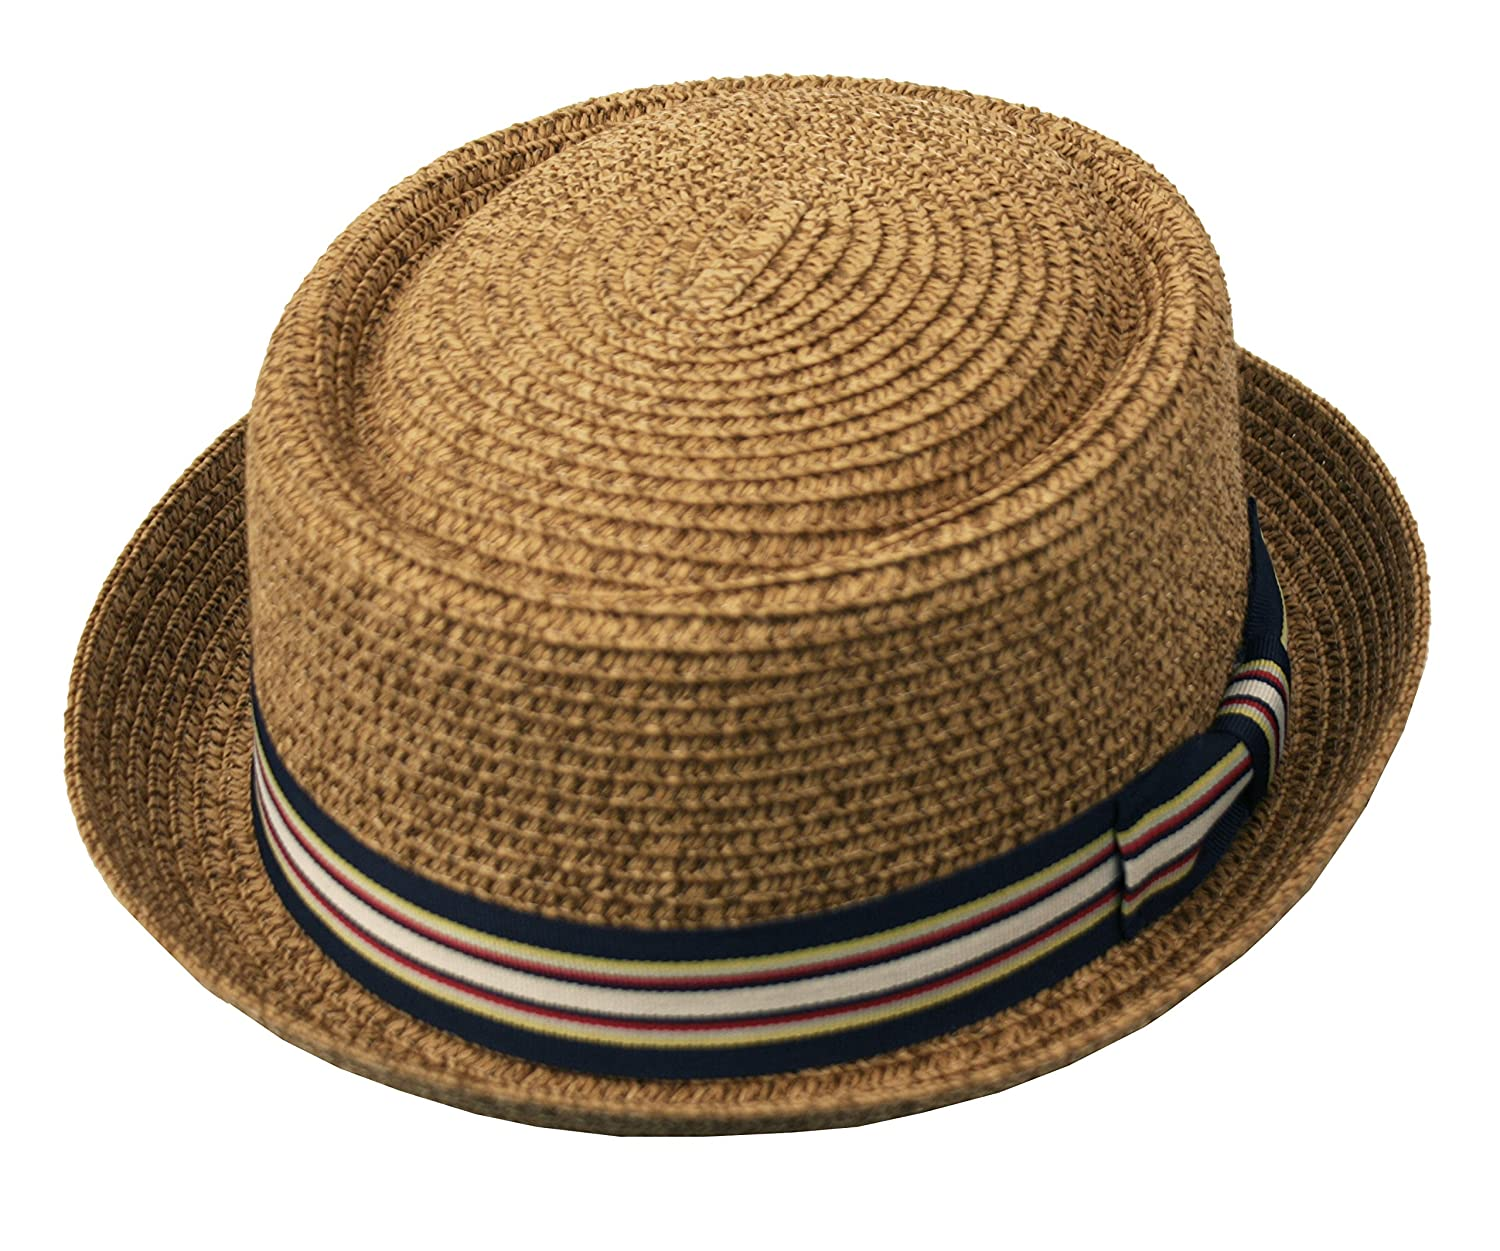 Men s Fancy Summer Straw Pork Pie Derby Fedora Upturn Brim Hat at Amazon  Men s Clothing store  8910ea10040